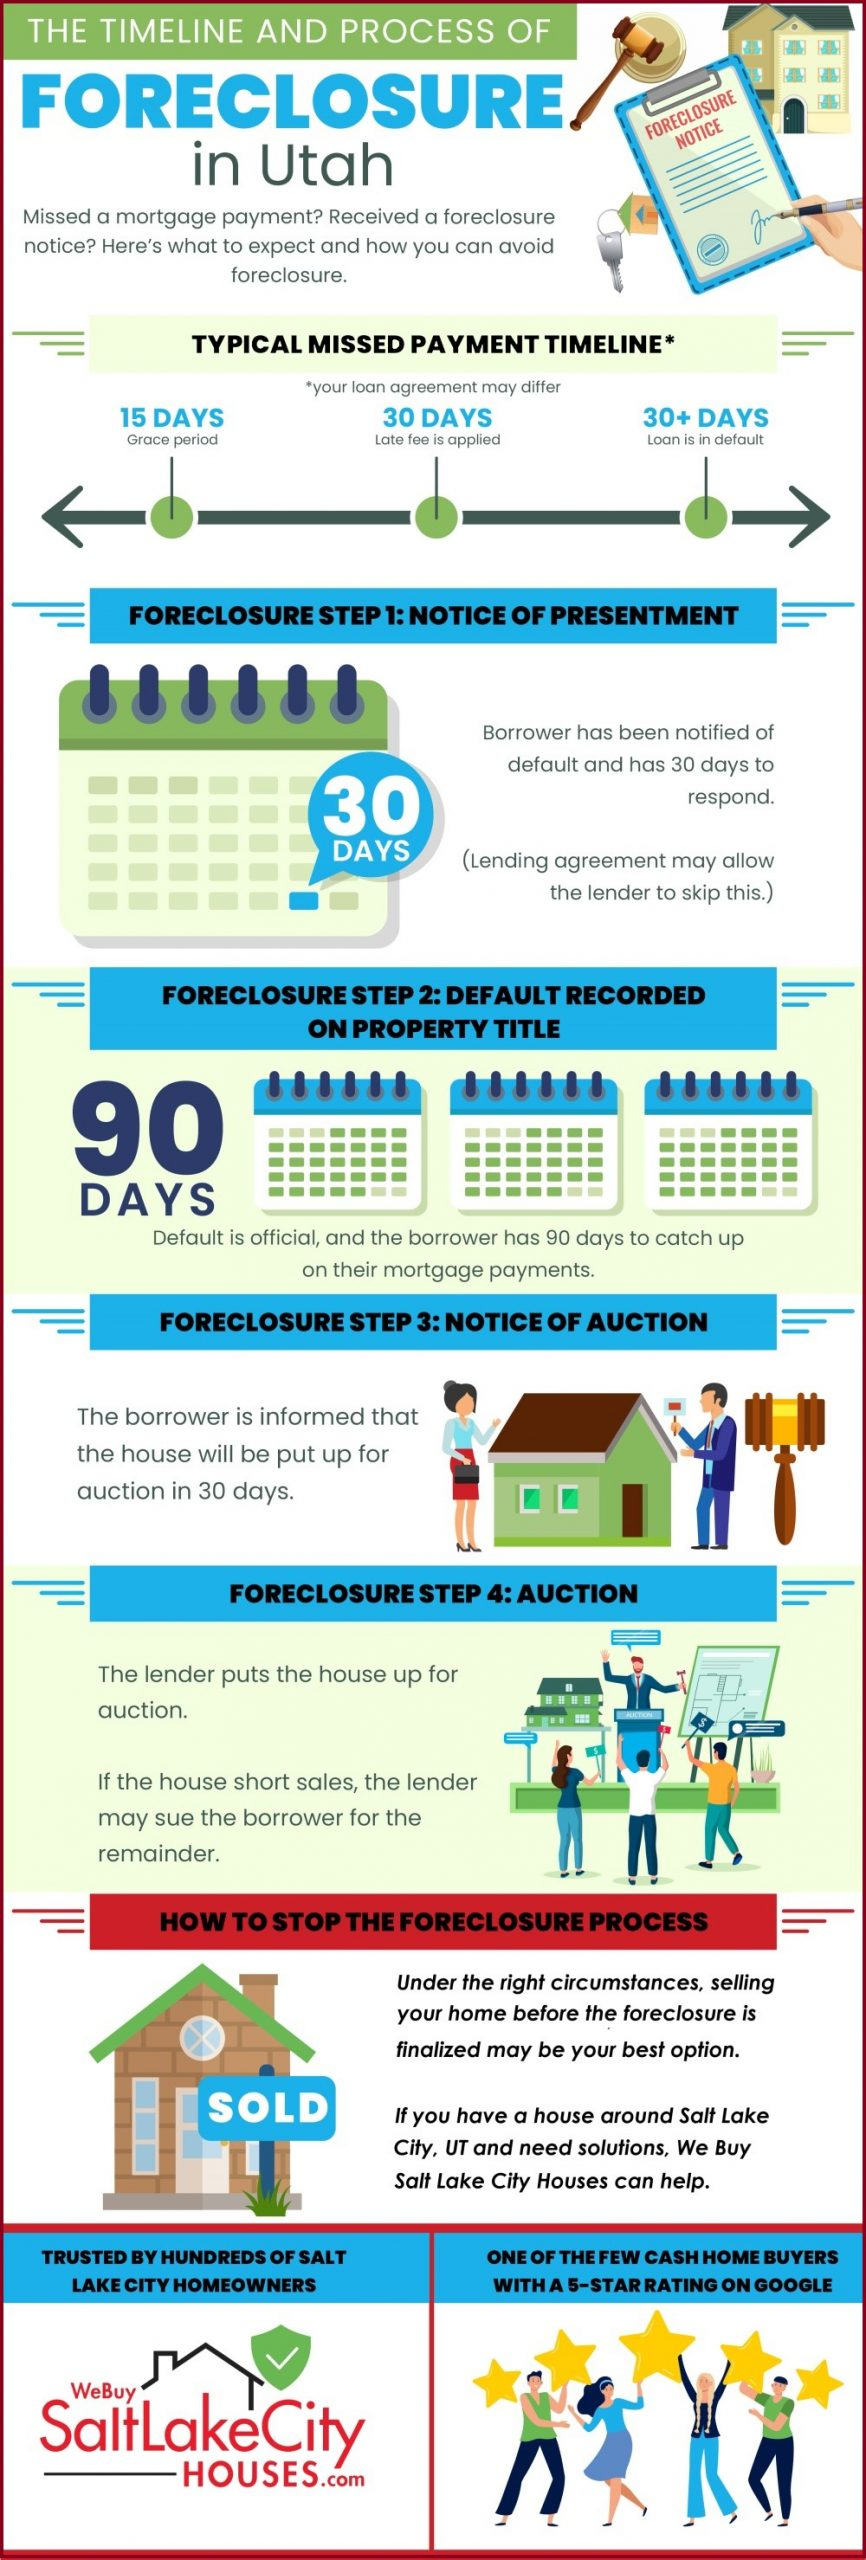 Infographic outlining the exact process of foreclosure in Utah, as well as how to avoid foreclosure